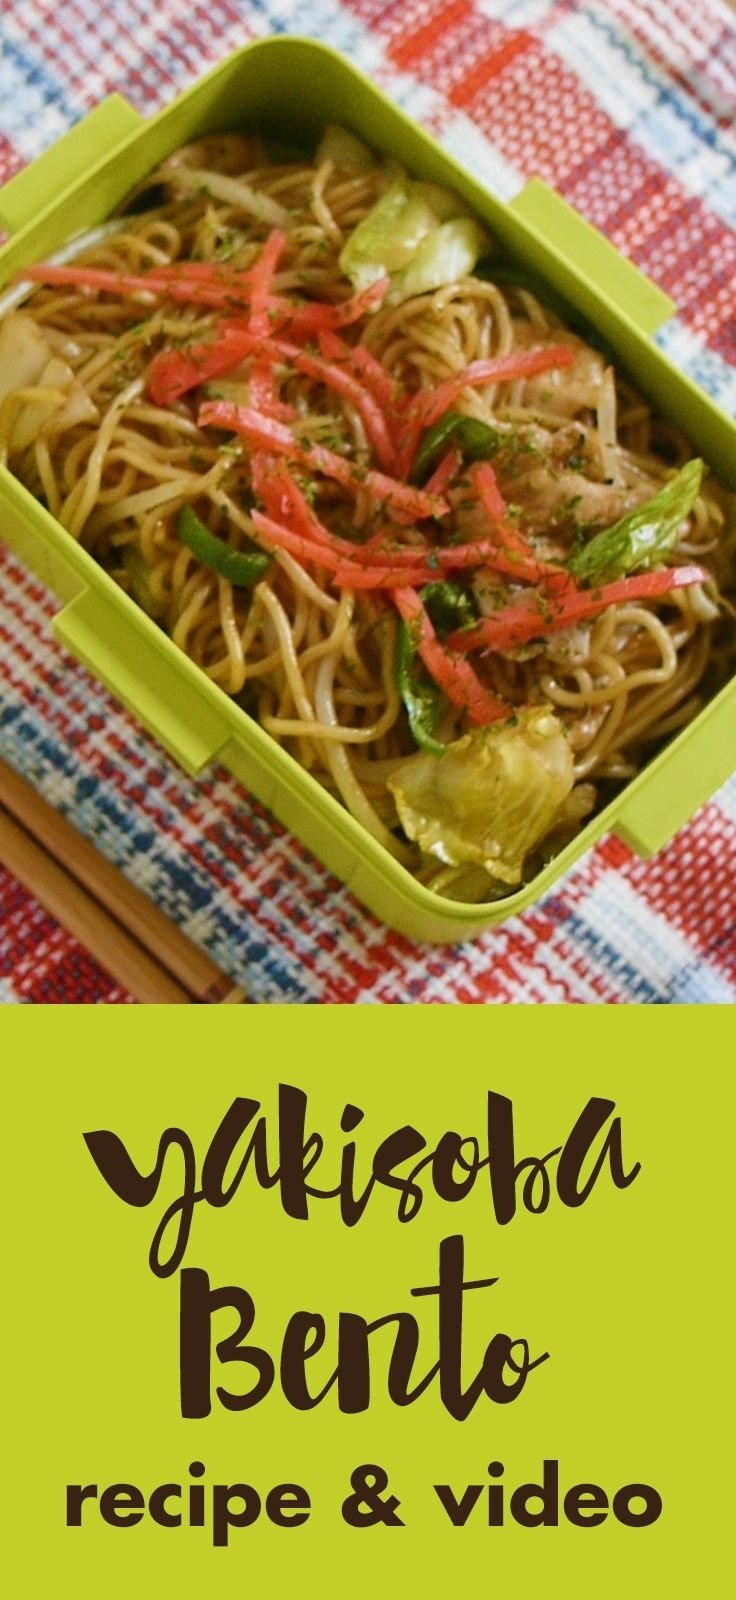 10 Most Popular Bento Lunch Ideas For Adults yakisoba bento recipe visit our site for 100 quick and easy 2020